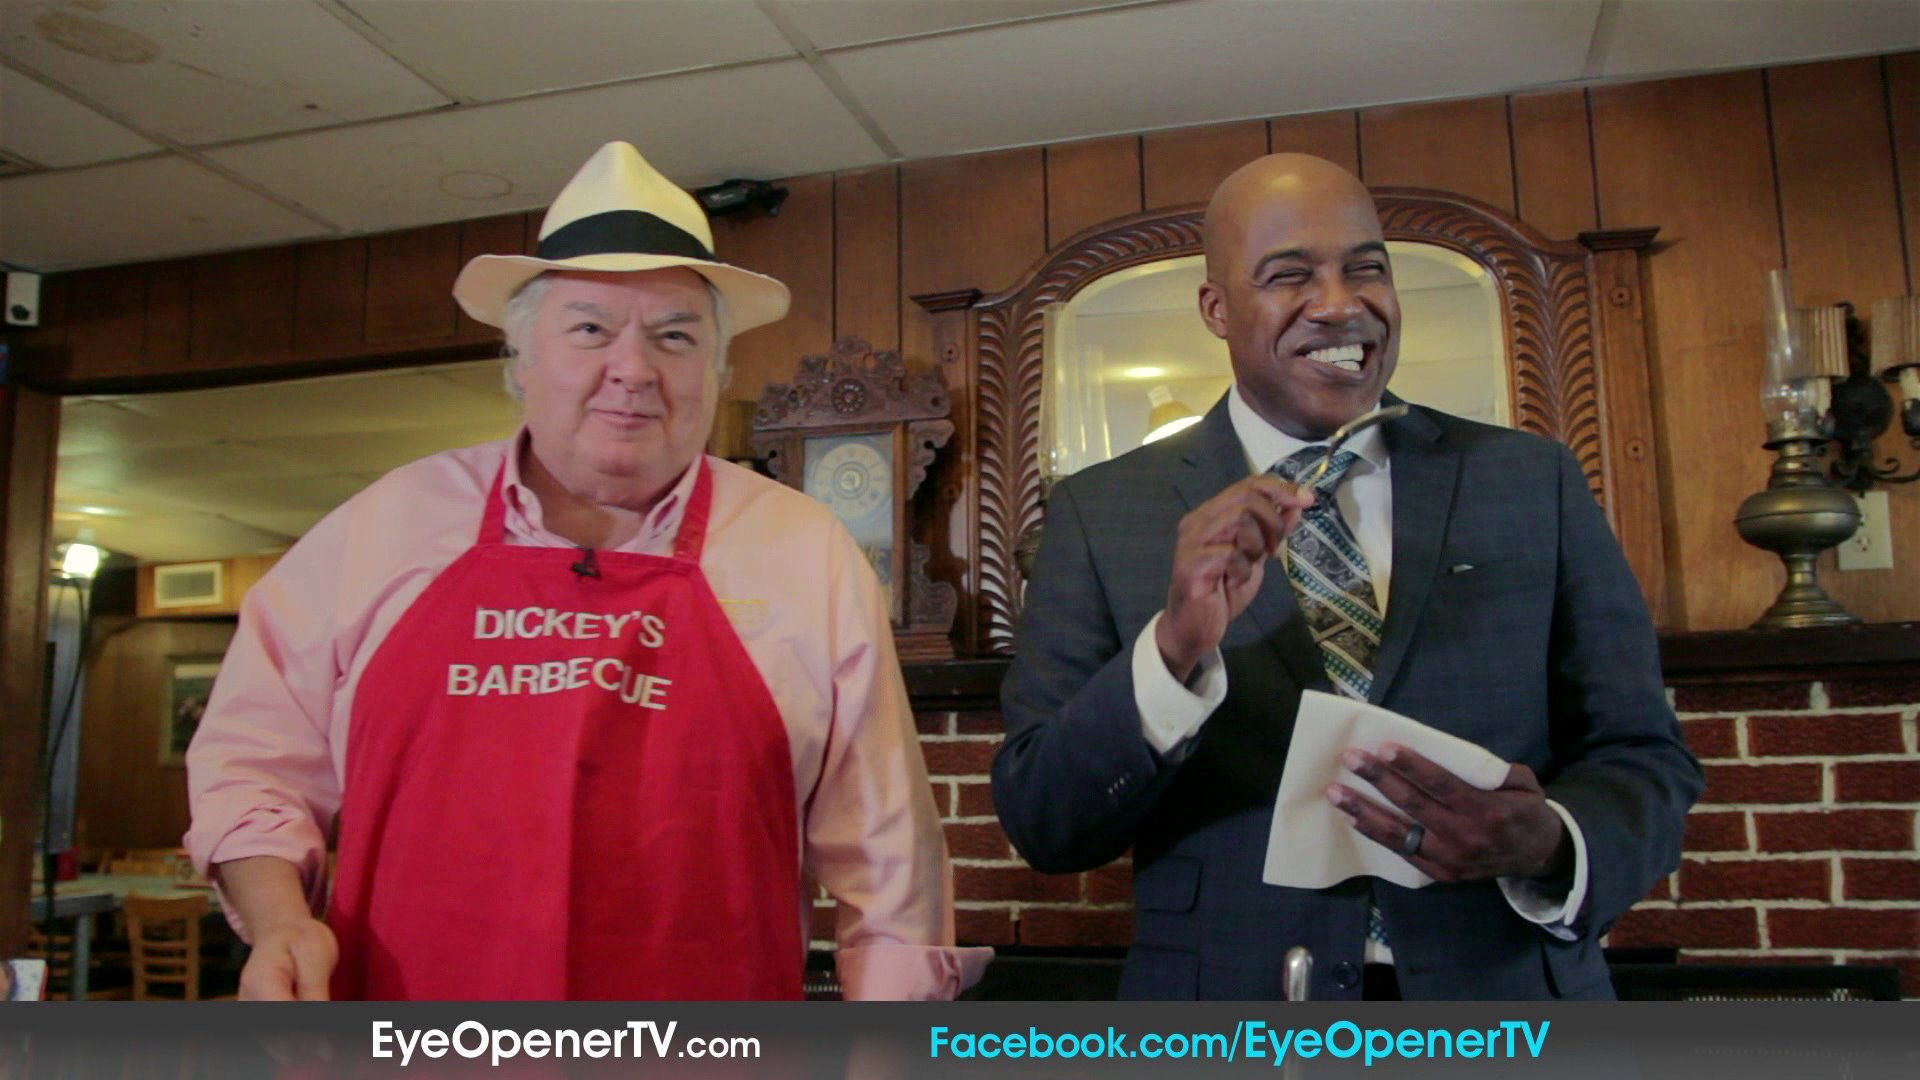 The Man Behind The Biggest BBQ Chain In America